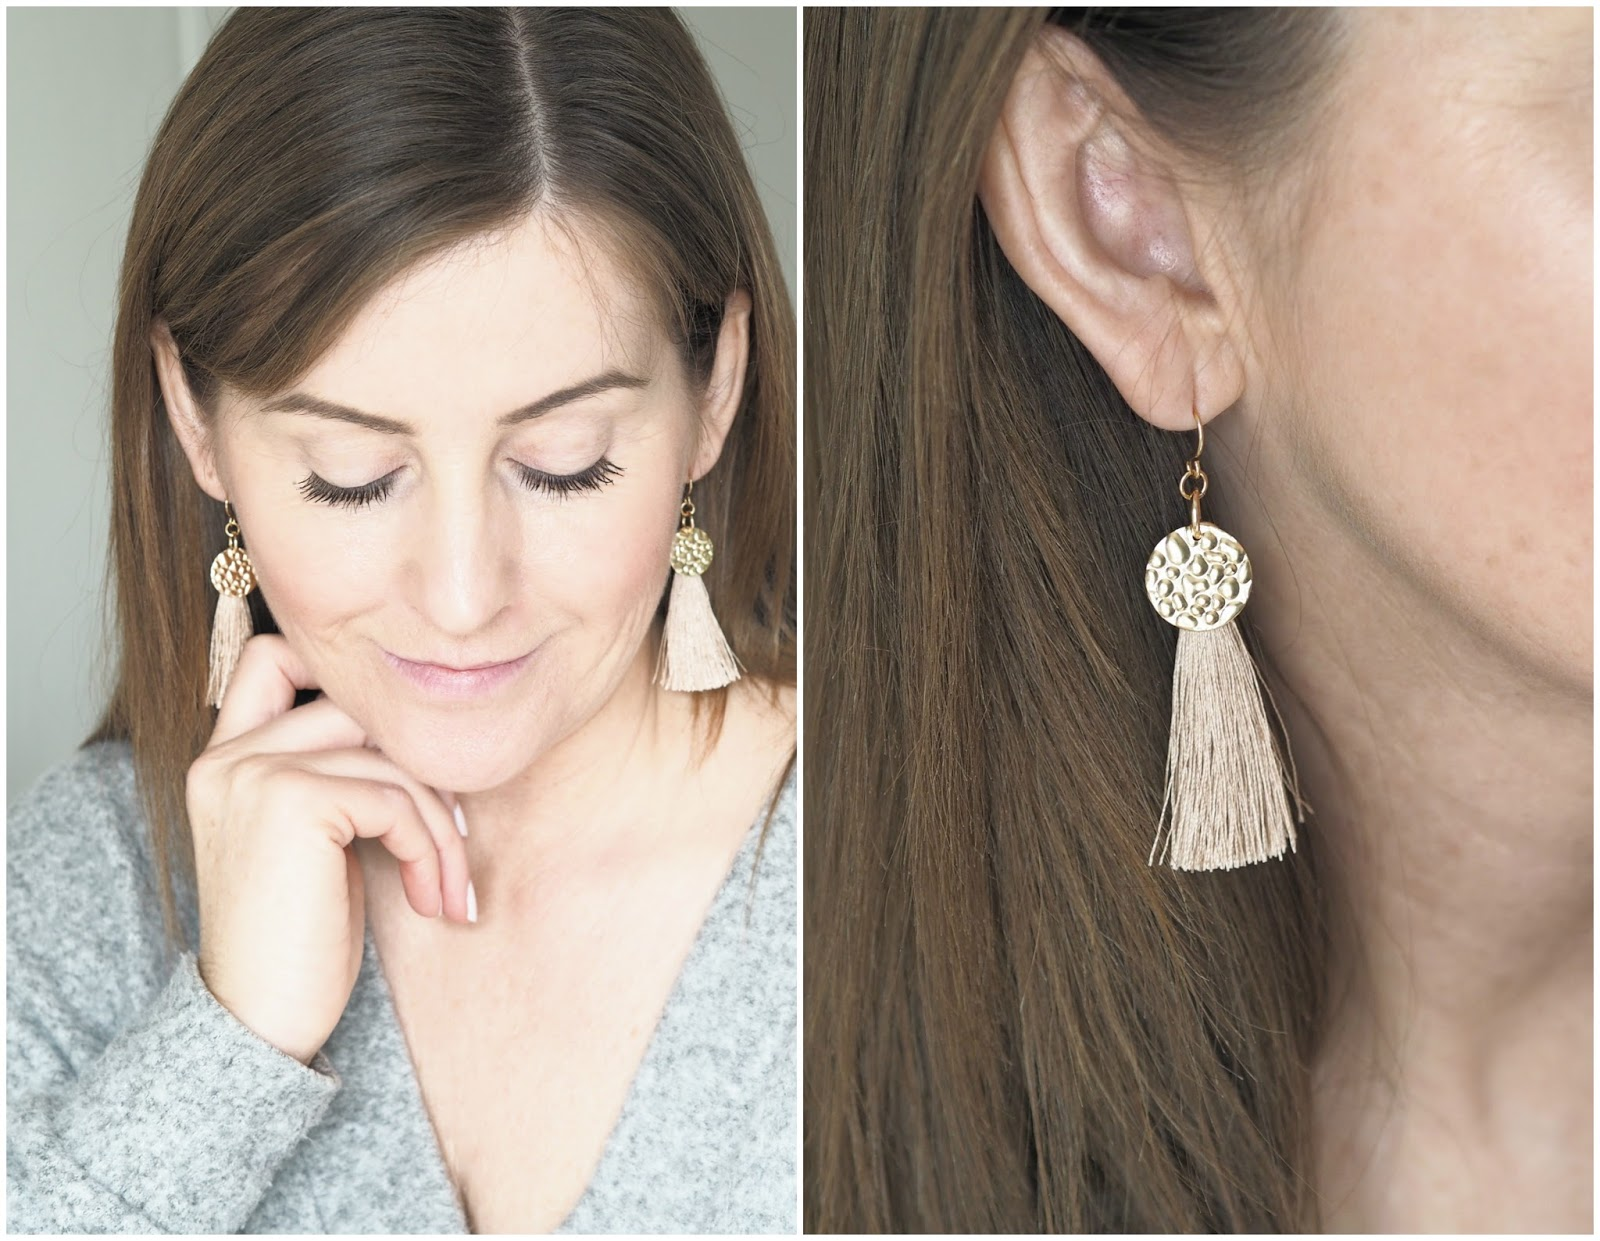 Tassell earrings from Lovisa \ style accessories \ jewellery \ Priceless Life of Mine \ Over 40 lifestyle blog